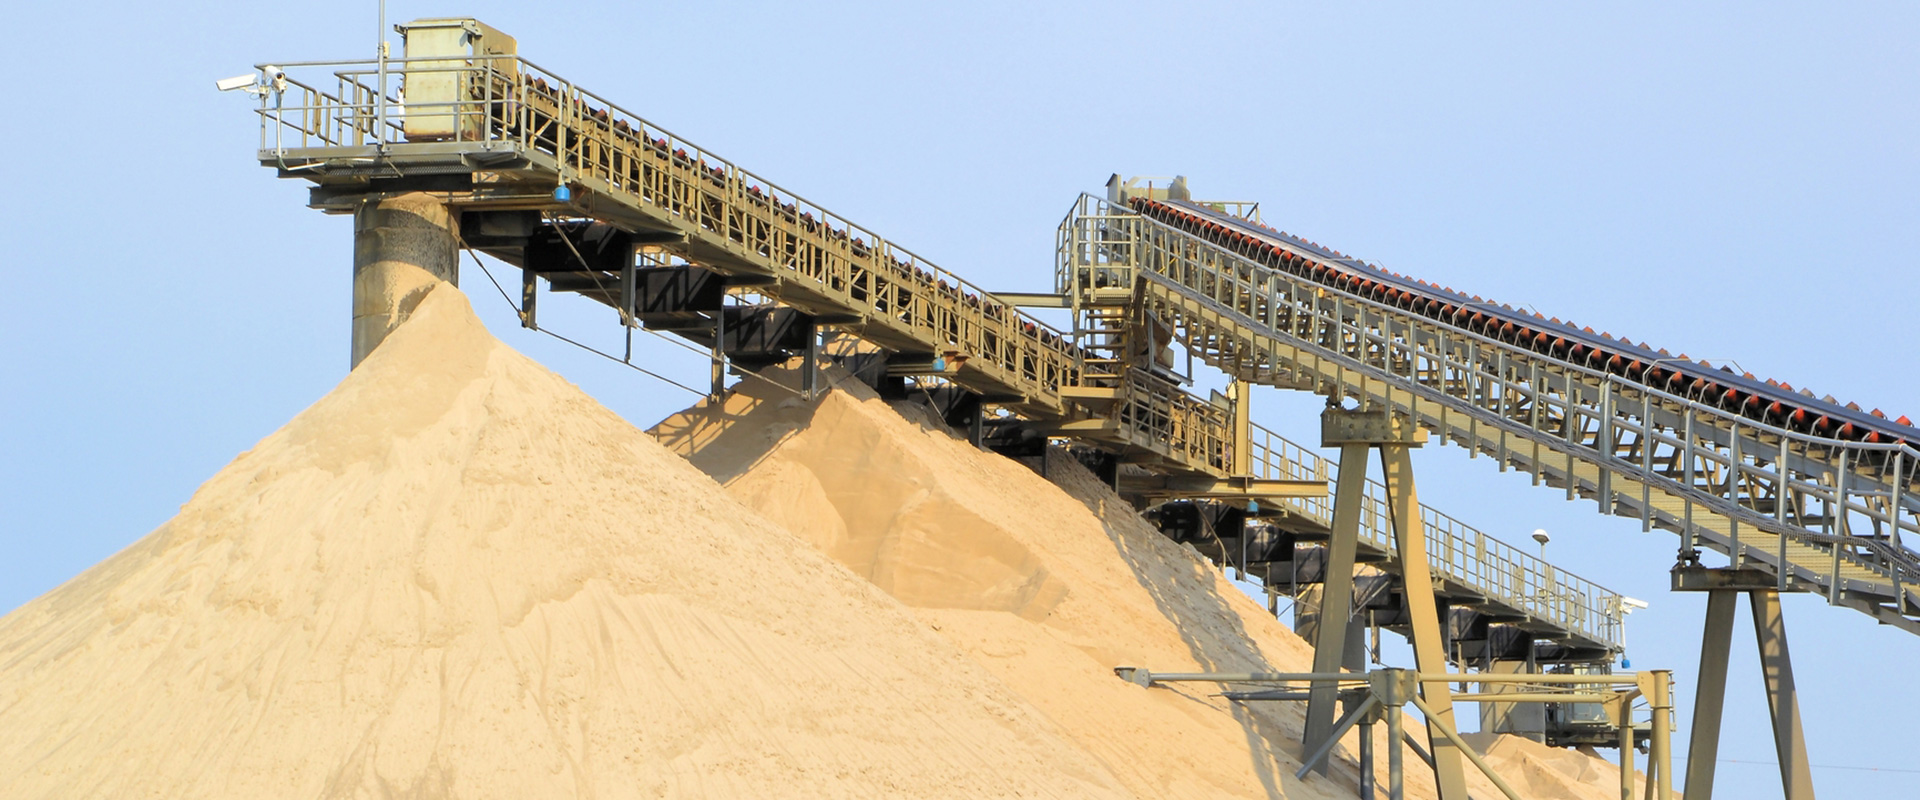 stacker conveyor belt in a sand quarry